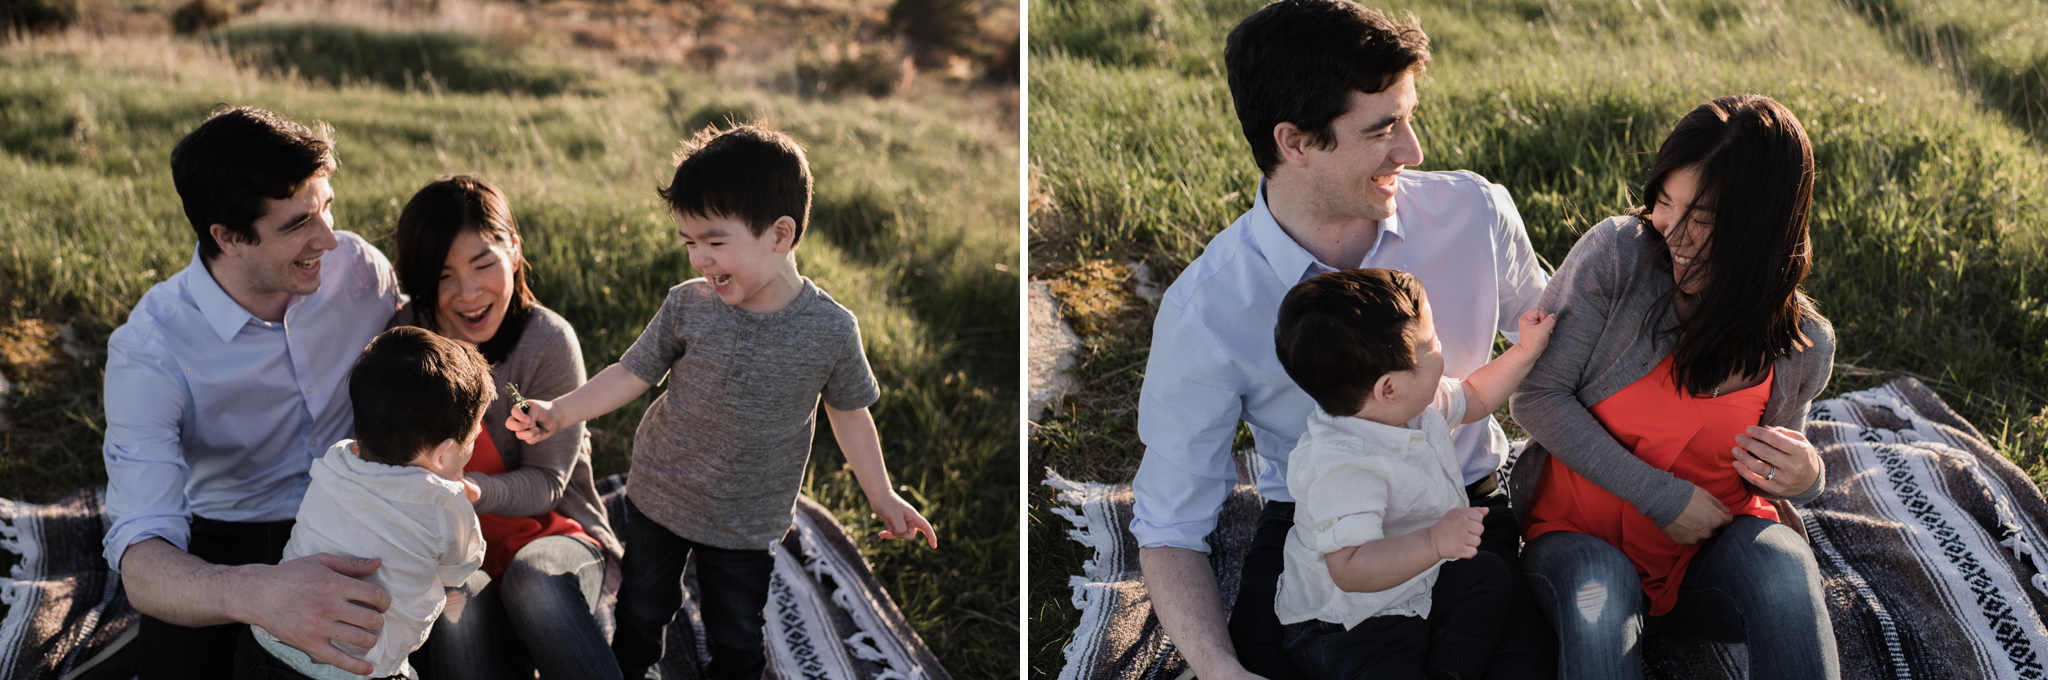 119-interracial-family-young-boys-in-field-documentary-family-session.jpg